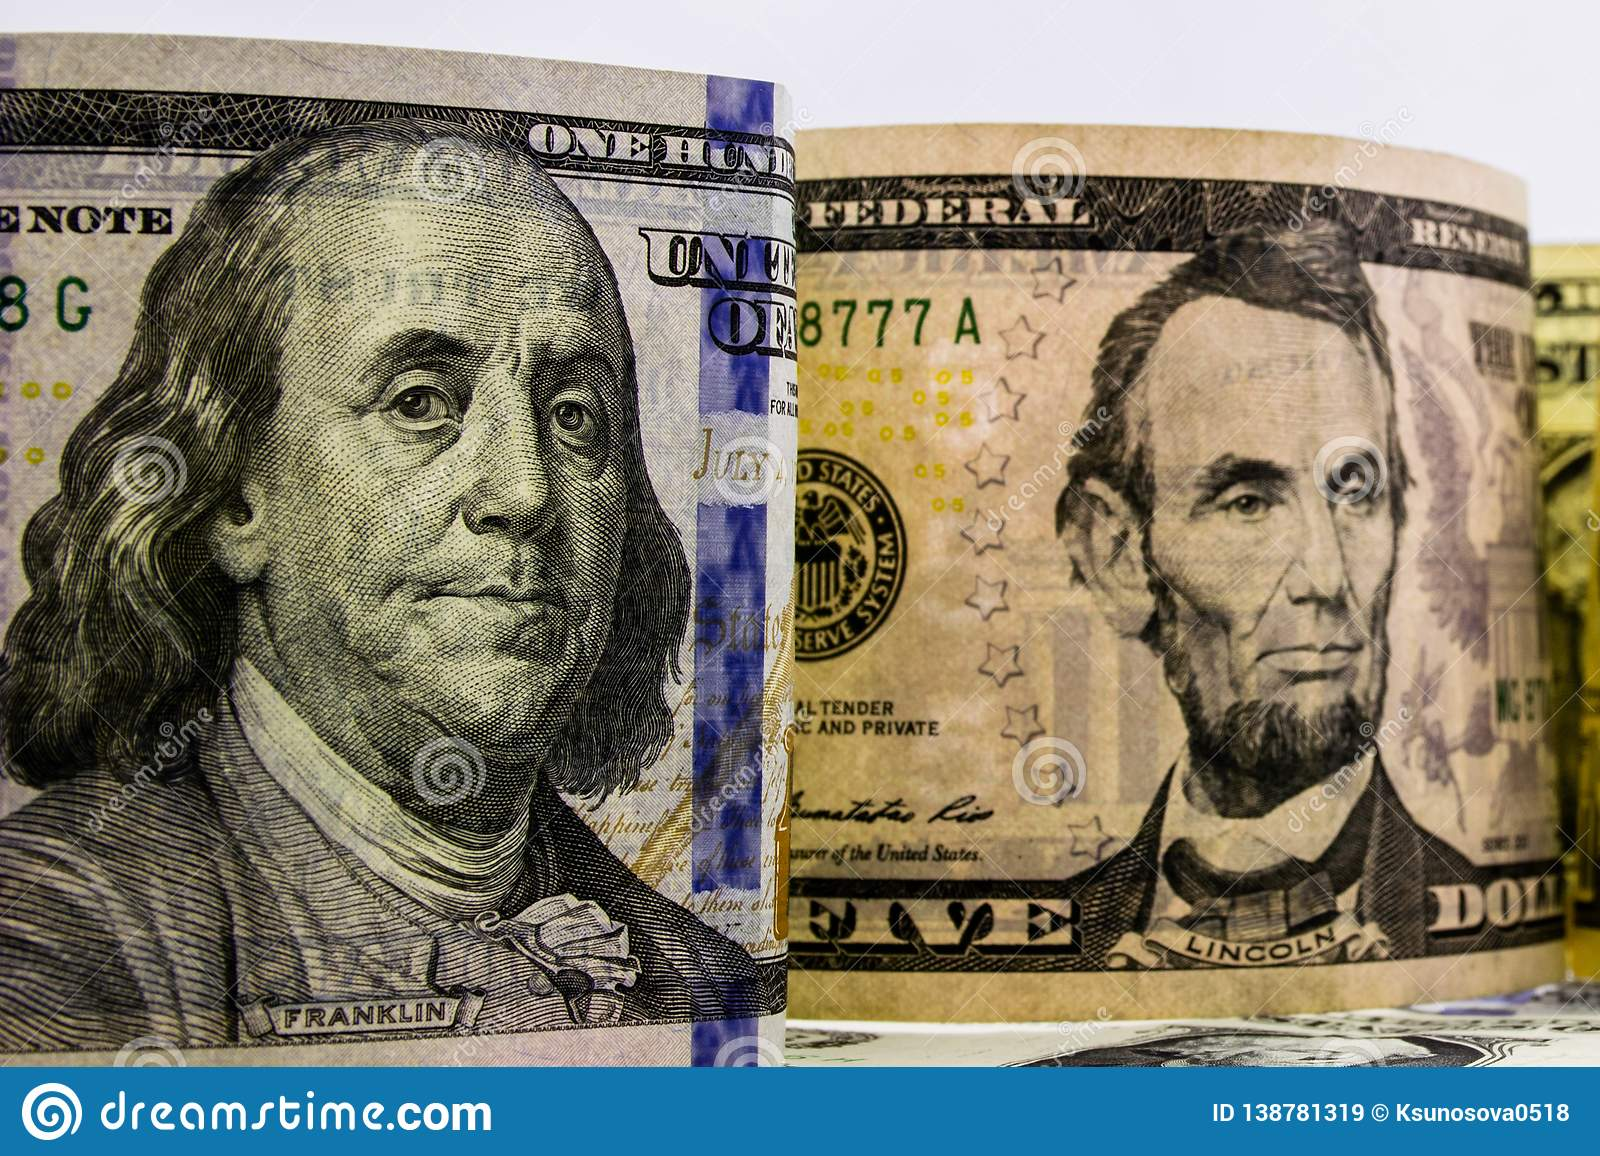 American dollars cash money. background from US dollars. different banknotes